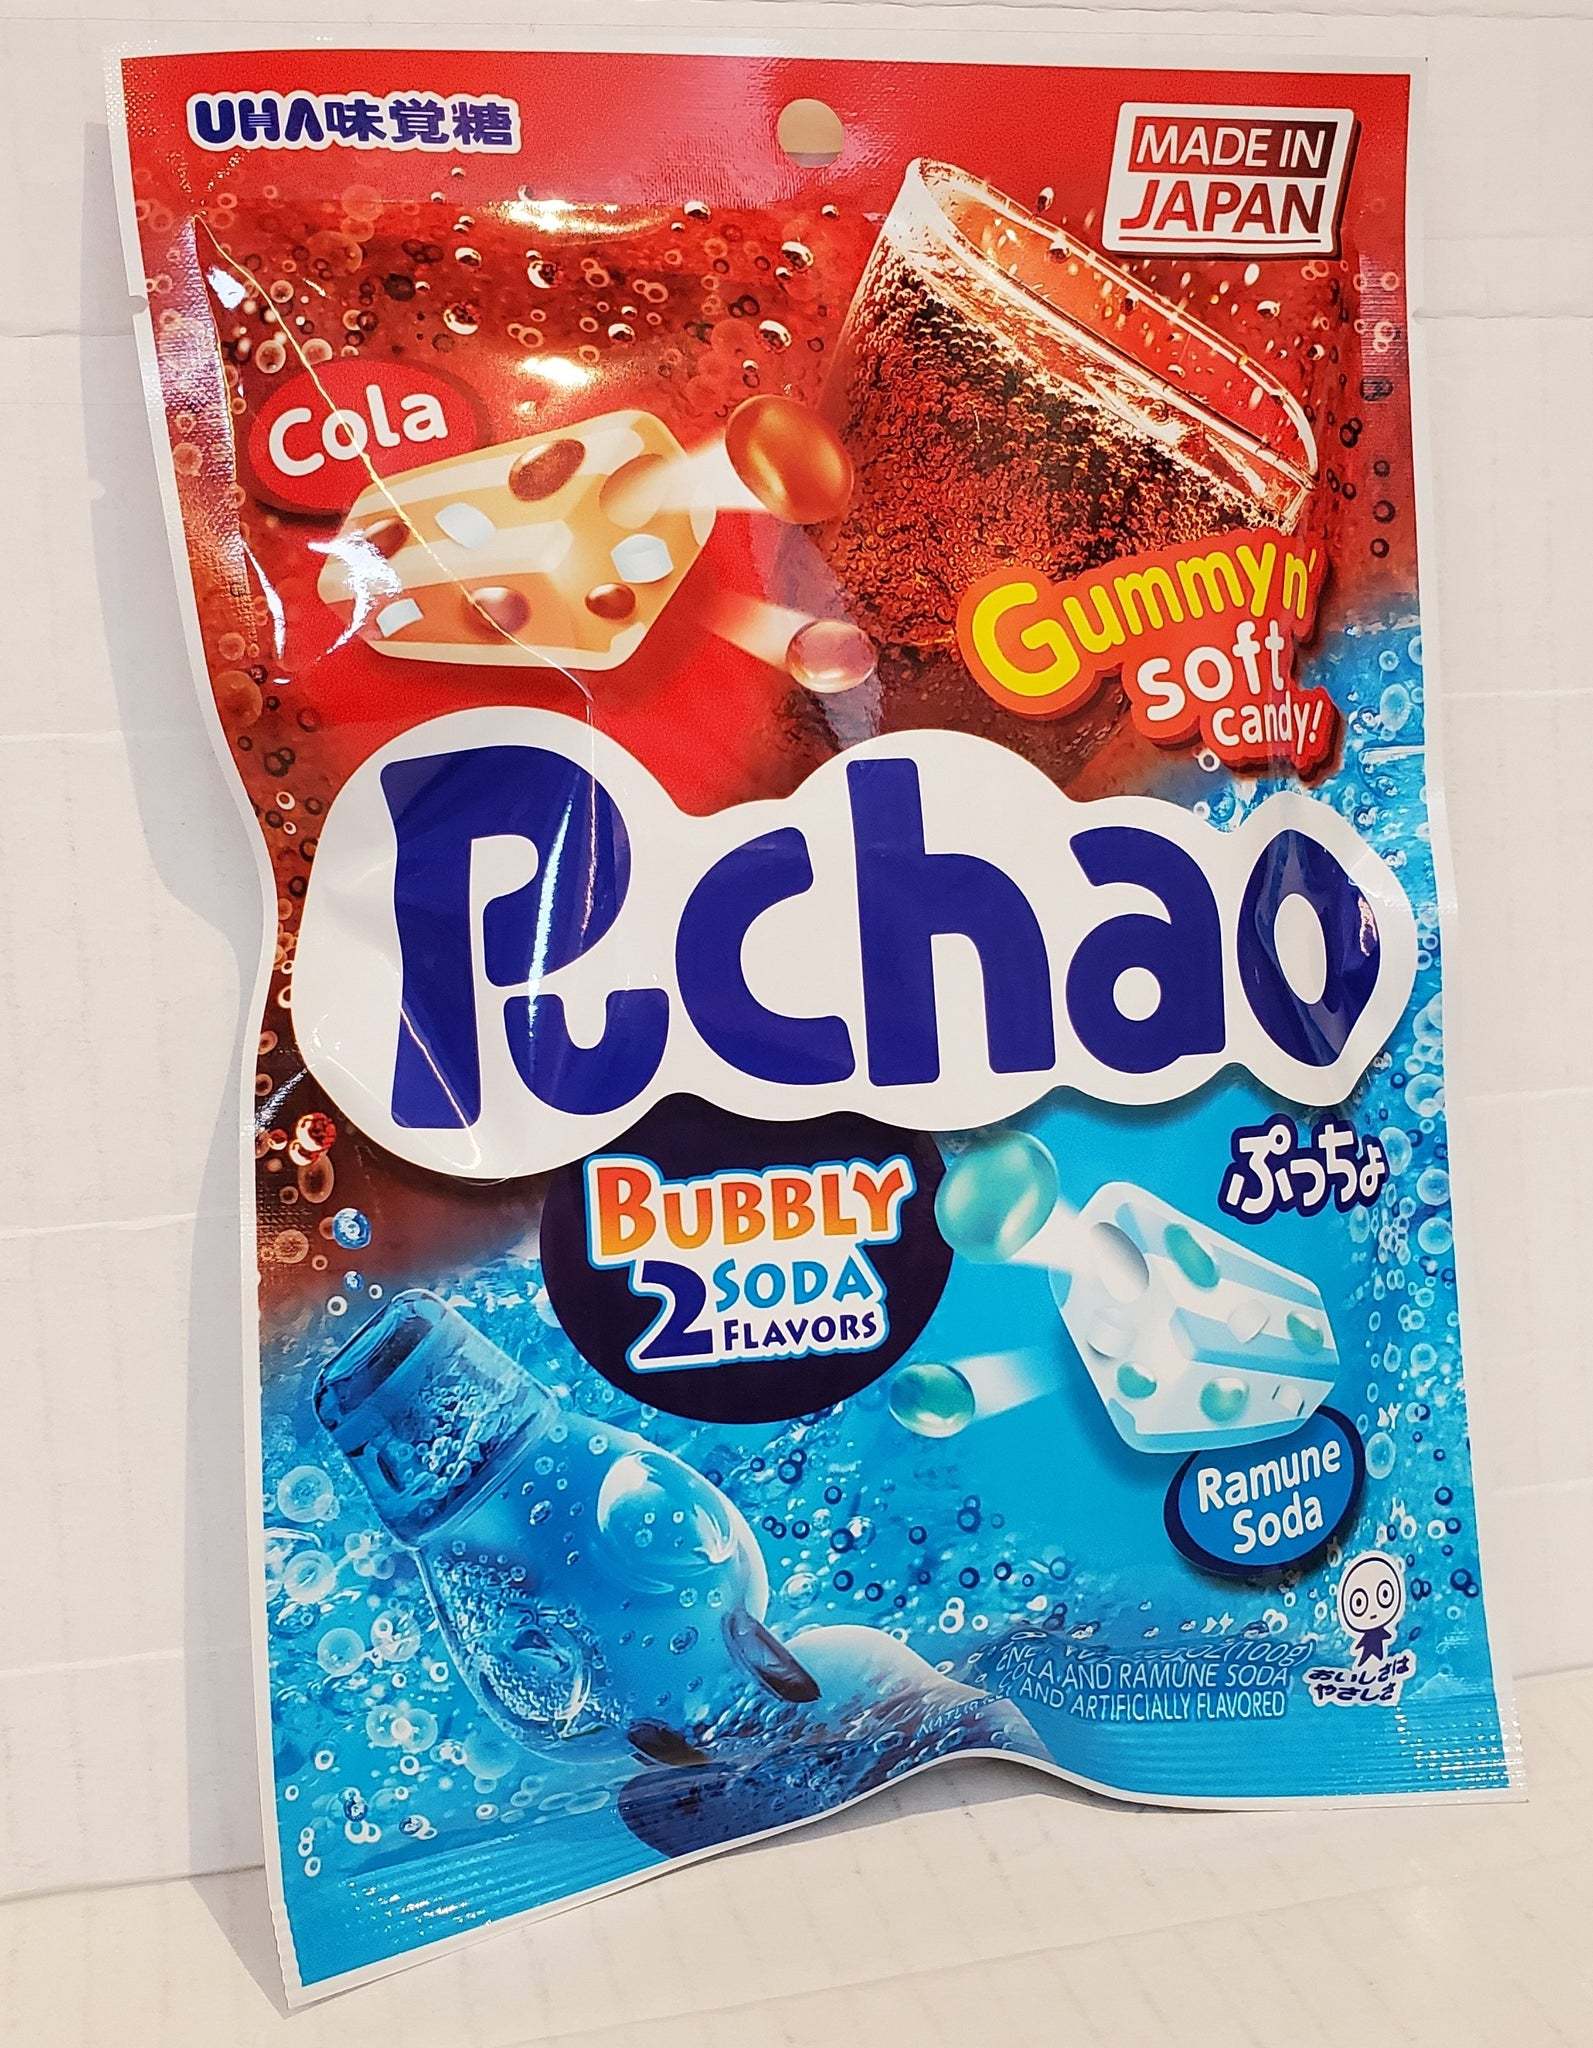 UHA puccho bubbly soda chewy candy 味覺糖超口感汽水軟糖